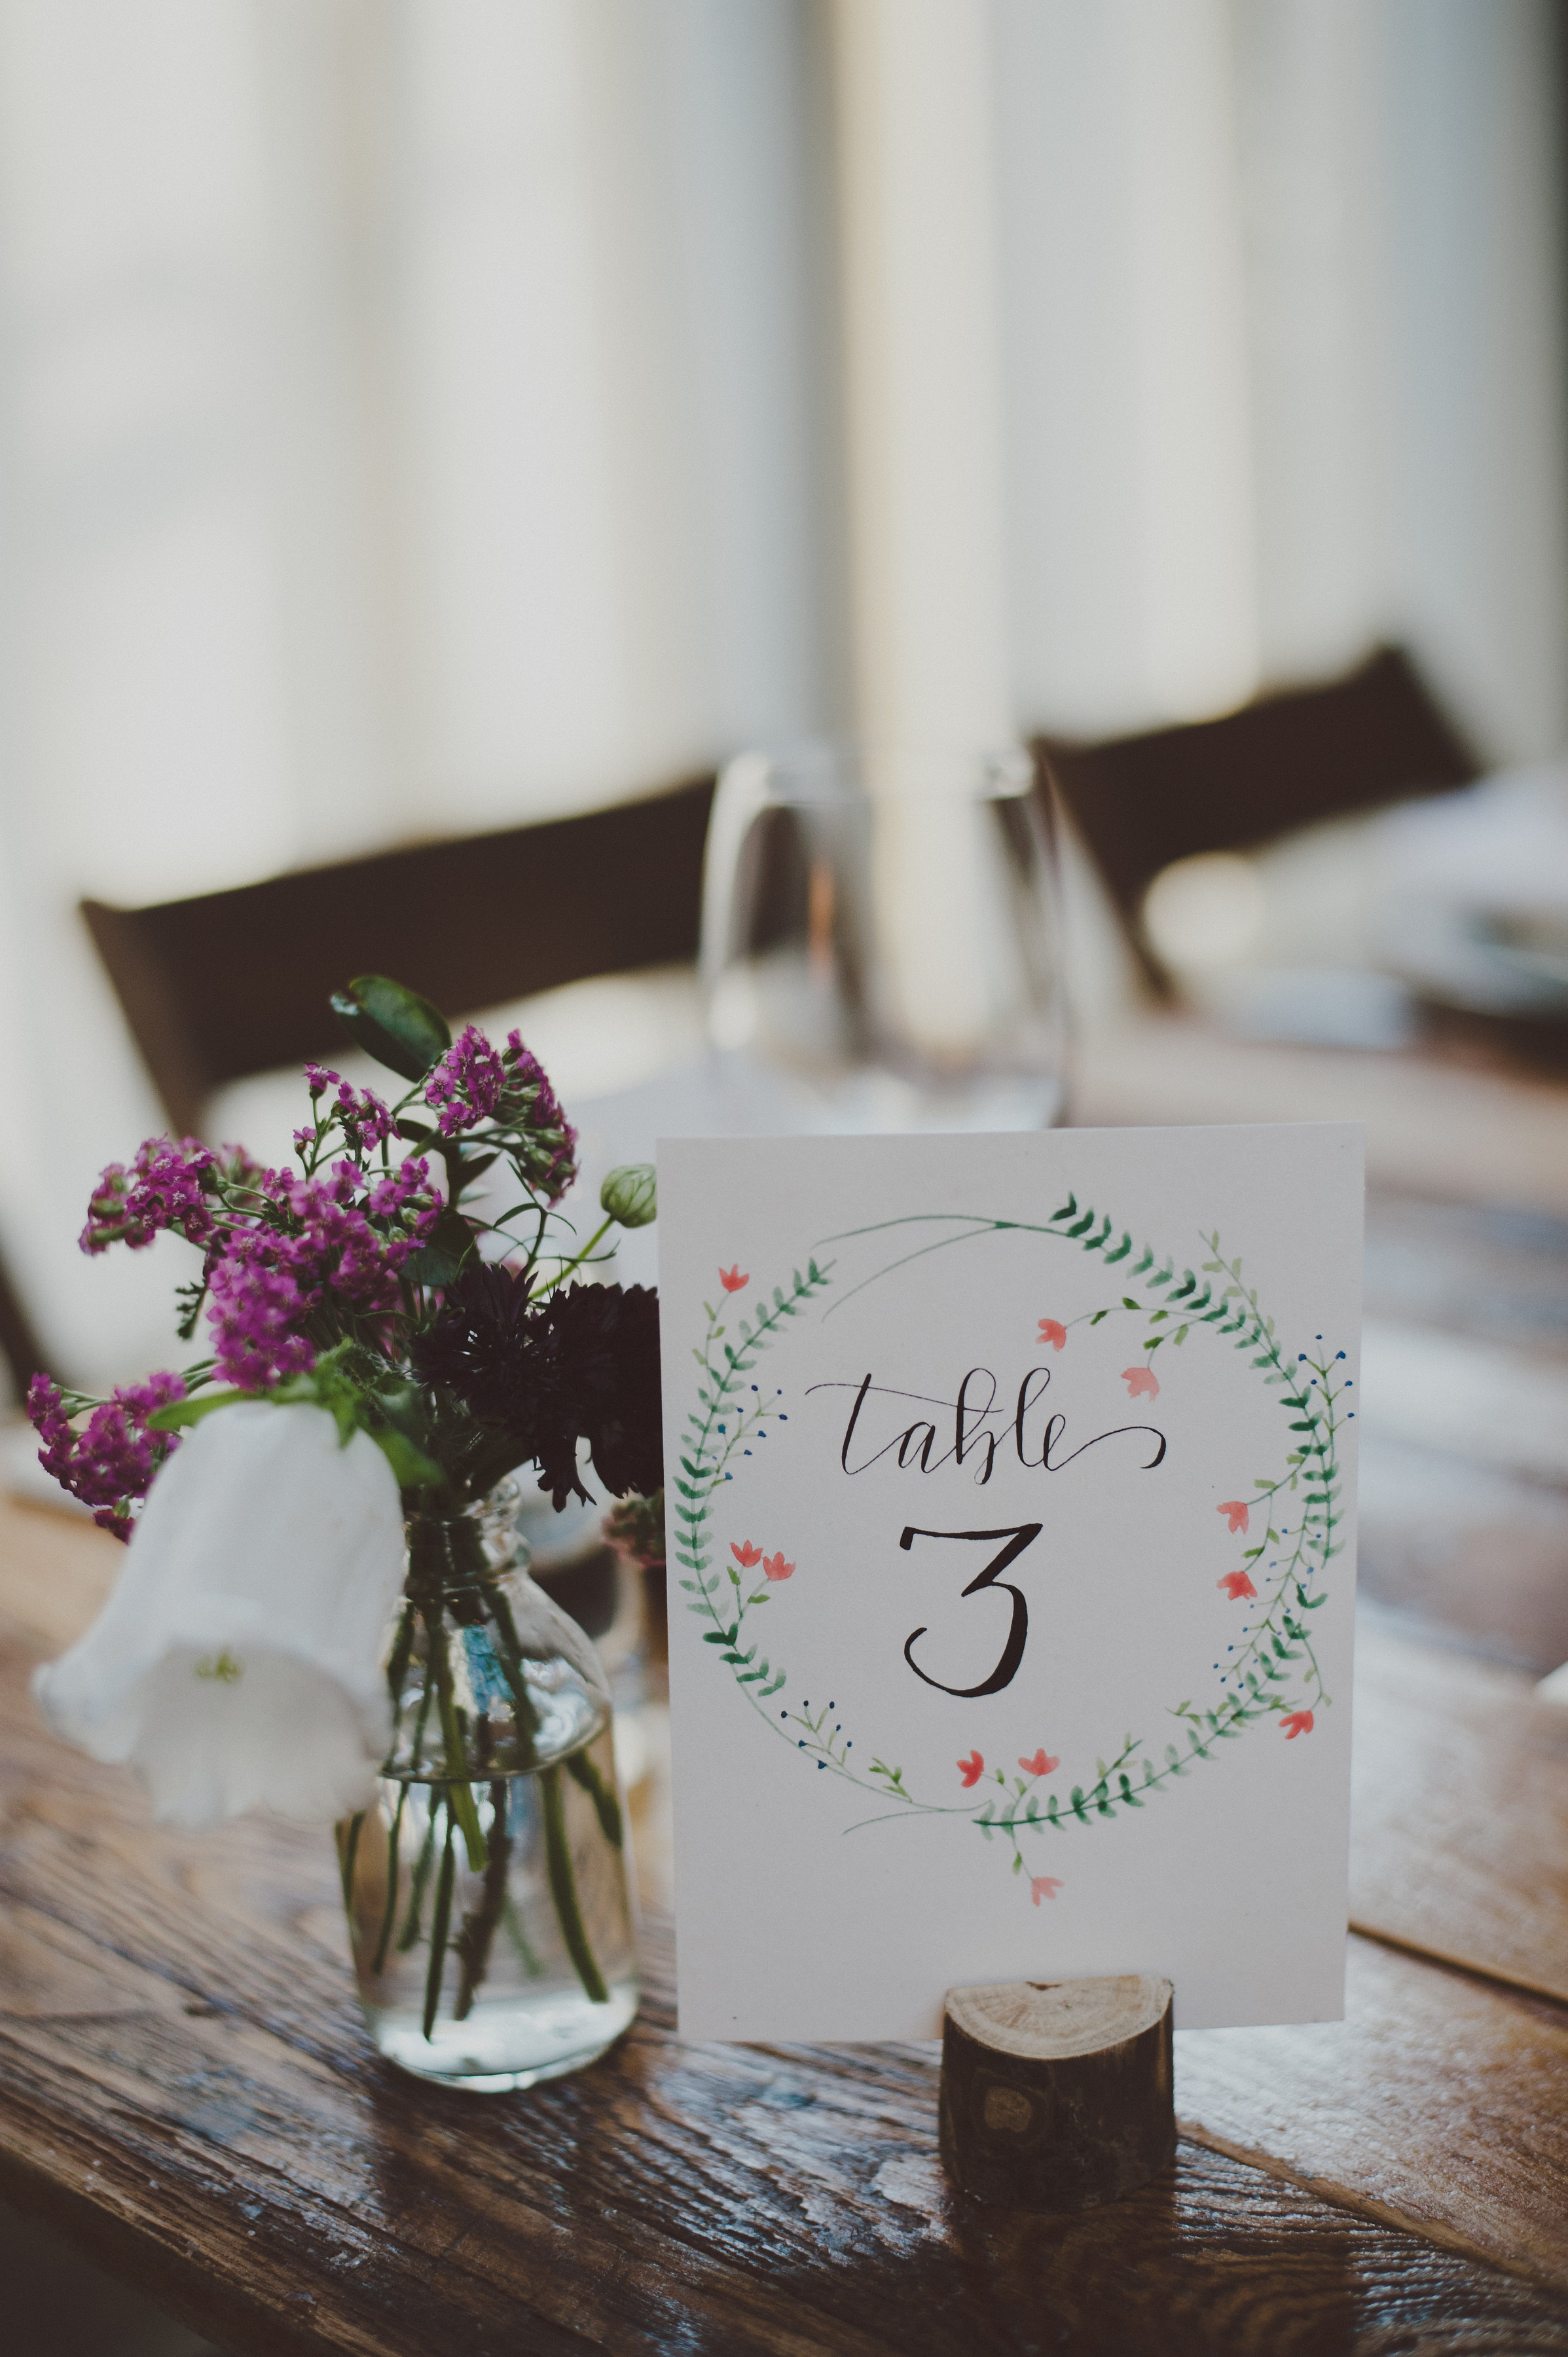 San Antonio Calligraphy South Texas Calligraphy Wedding Modern Calligraphy Weddings Table Numbers details